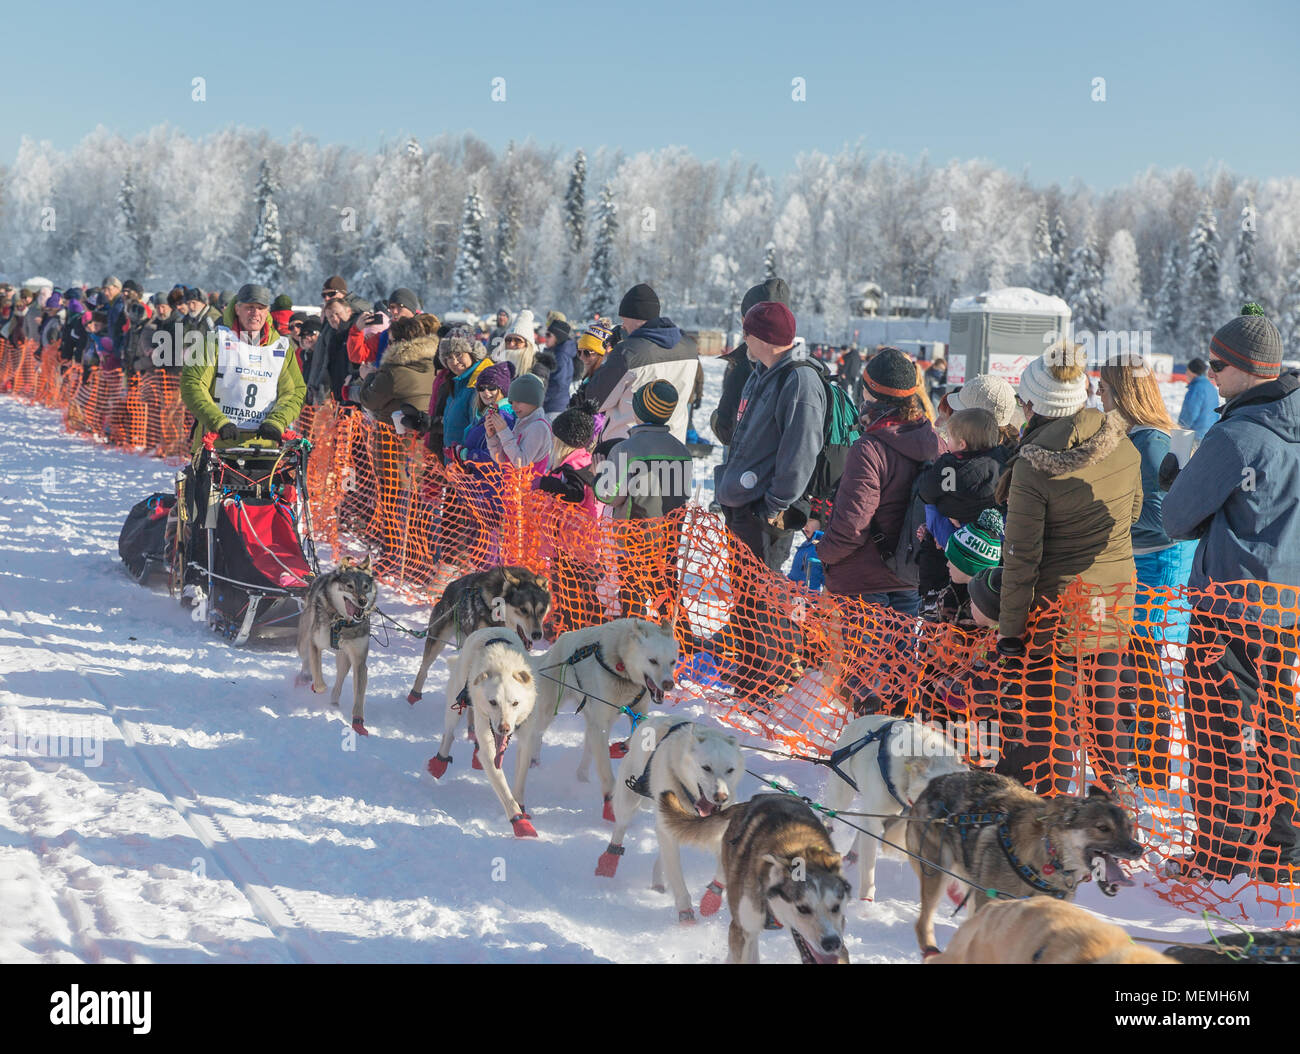 Musher Linwood Fiedler at the restart of the Iditarod in Willow Alaska - Stock Image